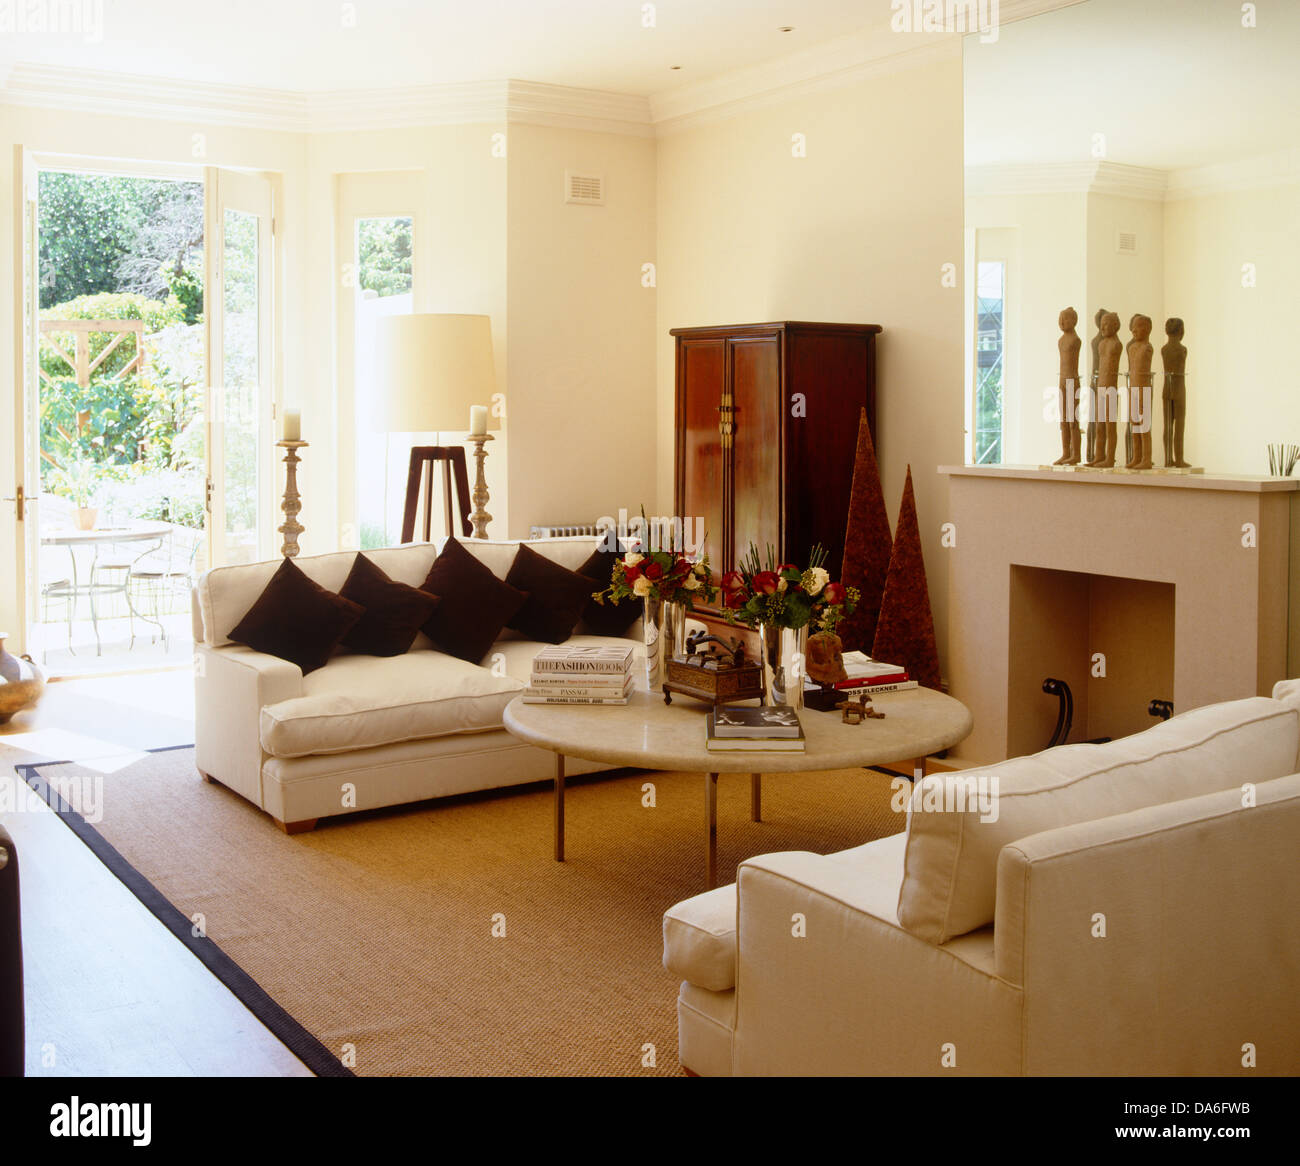 Sofa And Loveseat Opposite Each Other: Cream Sofas Facing Each Other Over Coffee Table In Front